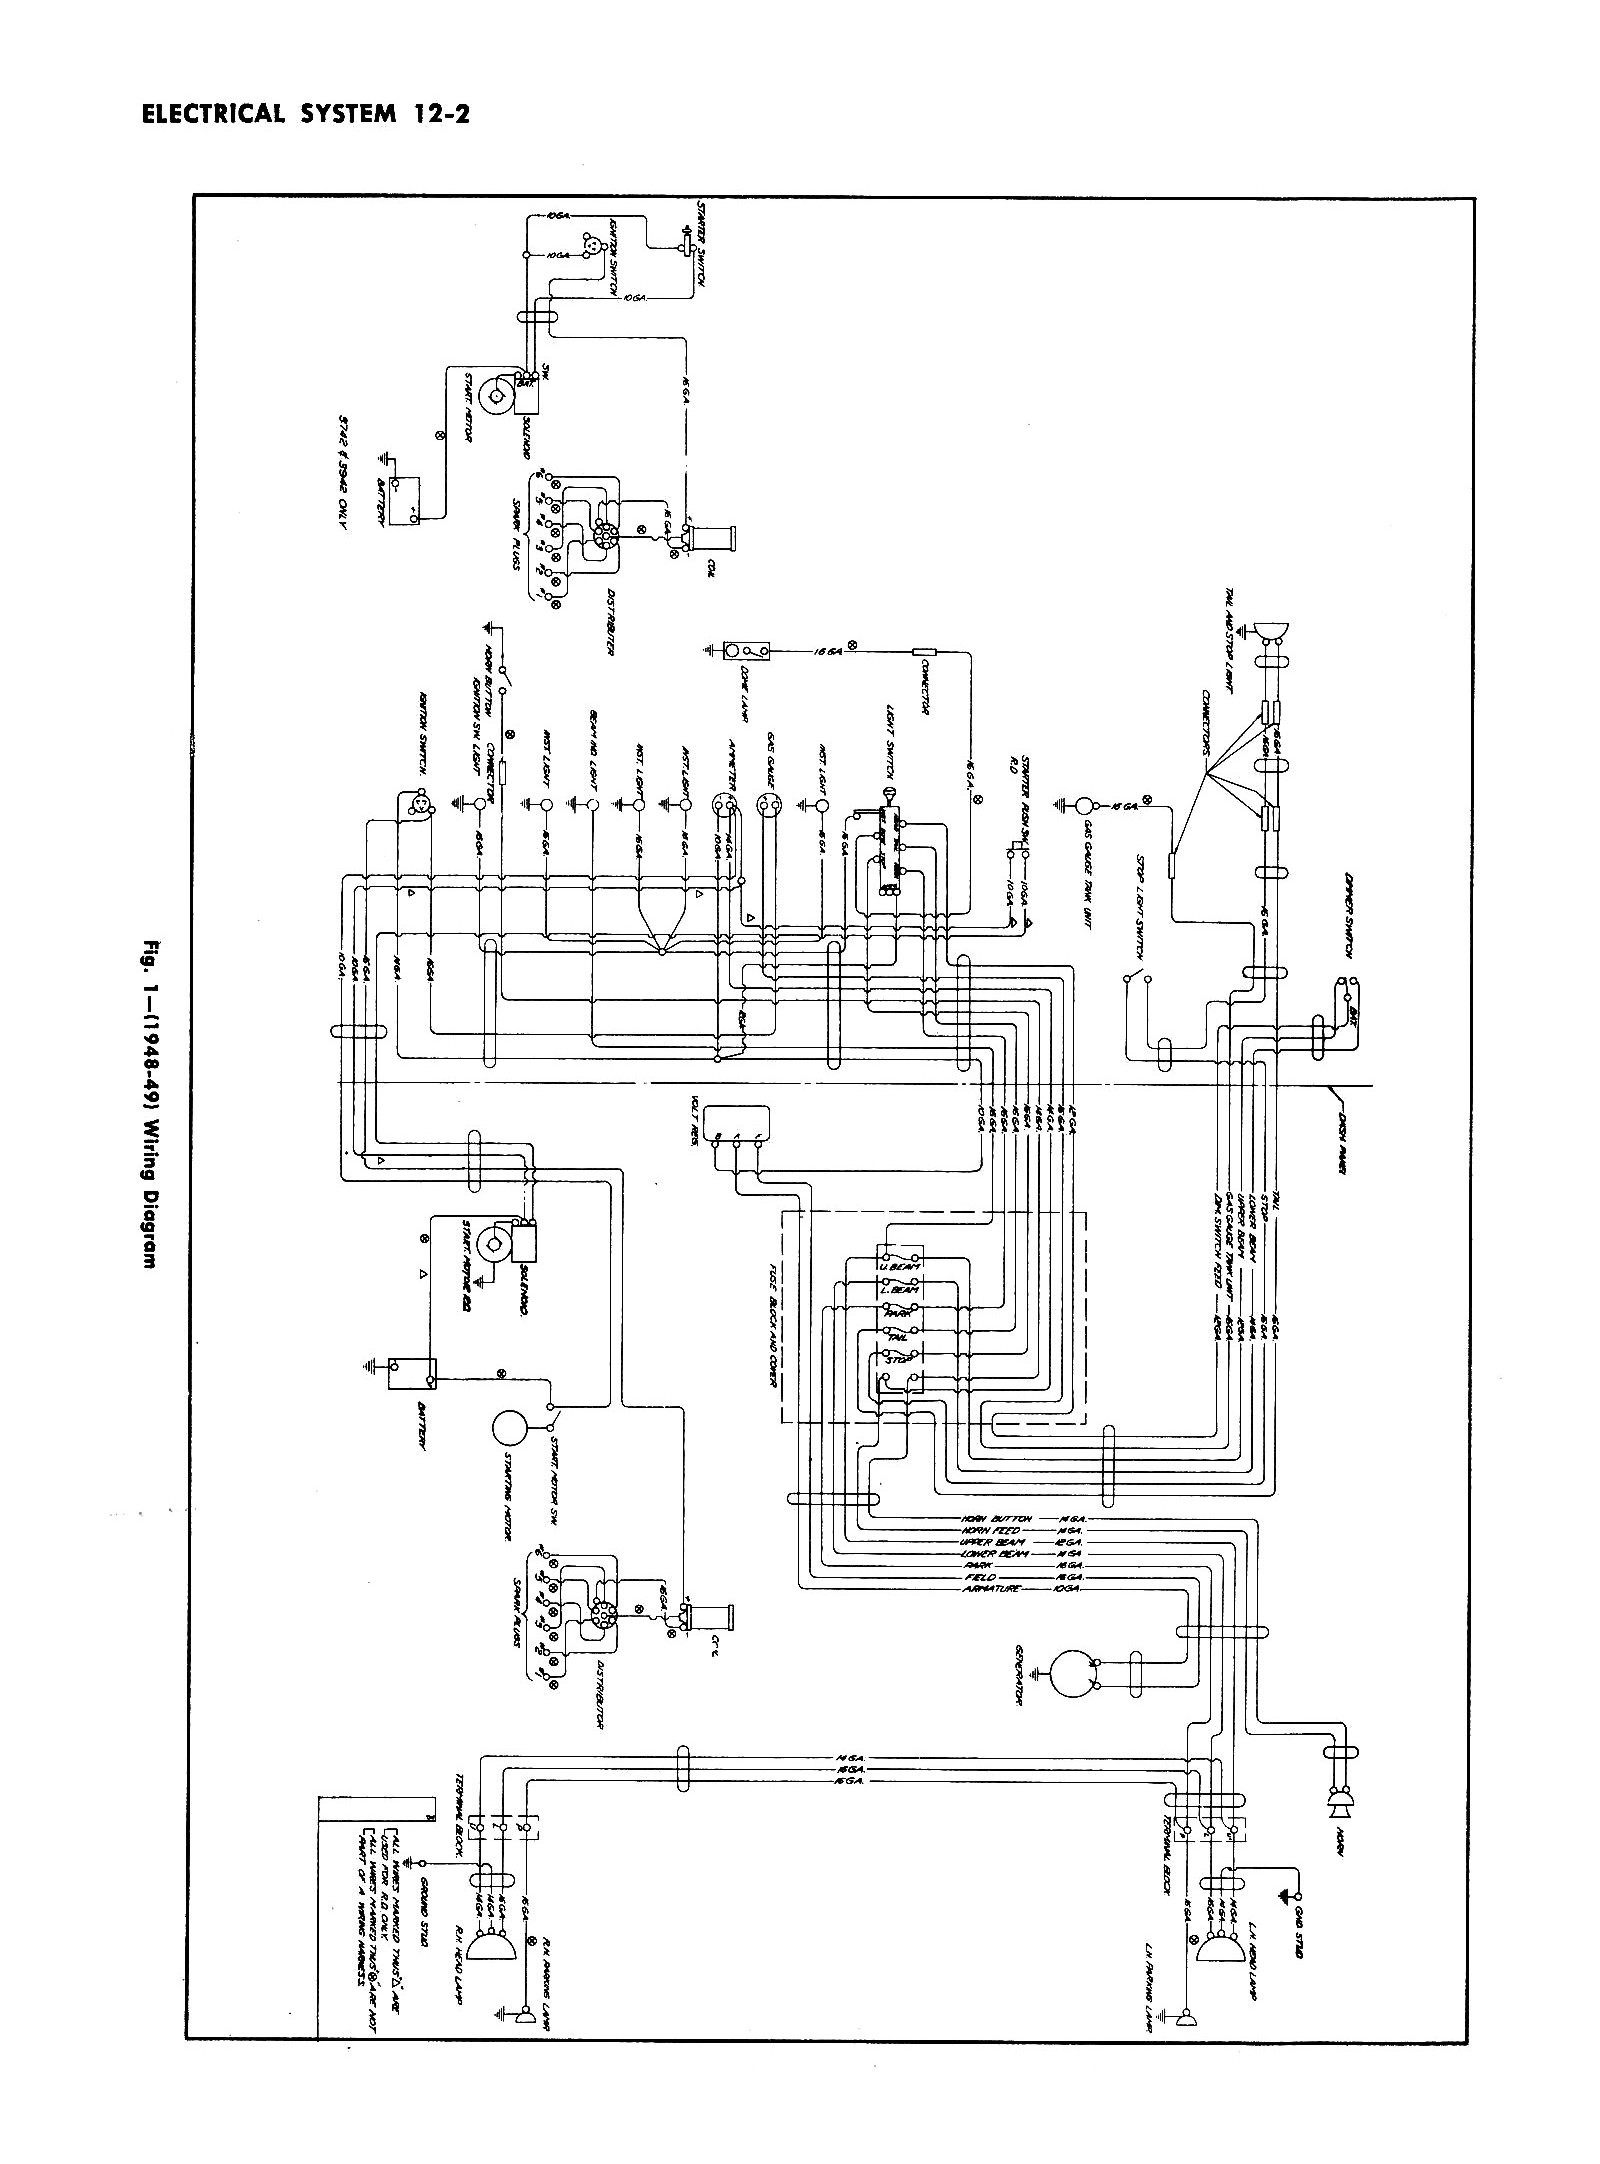 48car gmc ke switch wiring diagram wiring diagram simonand gmc truck wiring diagrams at bayanpartner.co